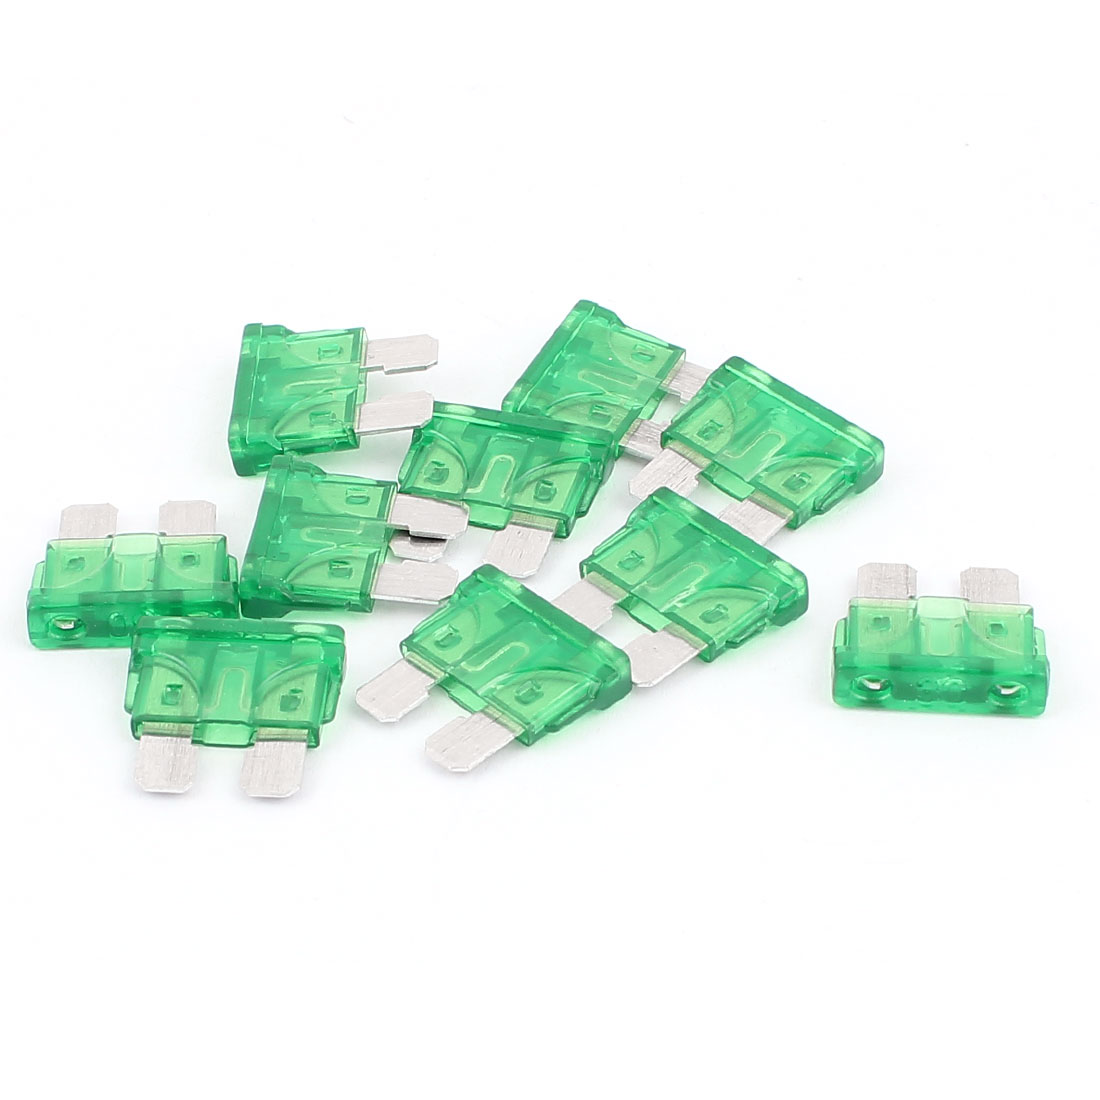 10pcs 30A Green Plastic Housing  Fuse for Auto Car Truck Motorcycle SUV